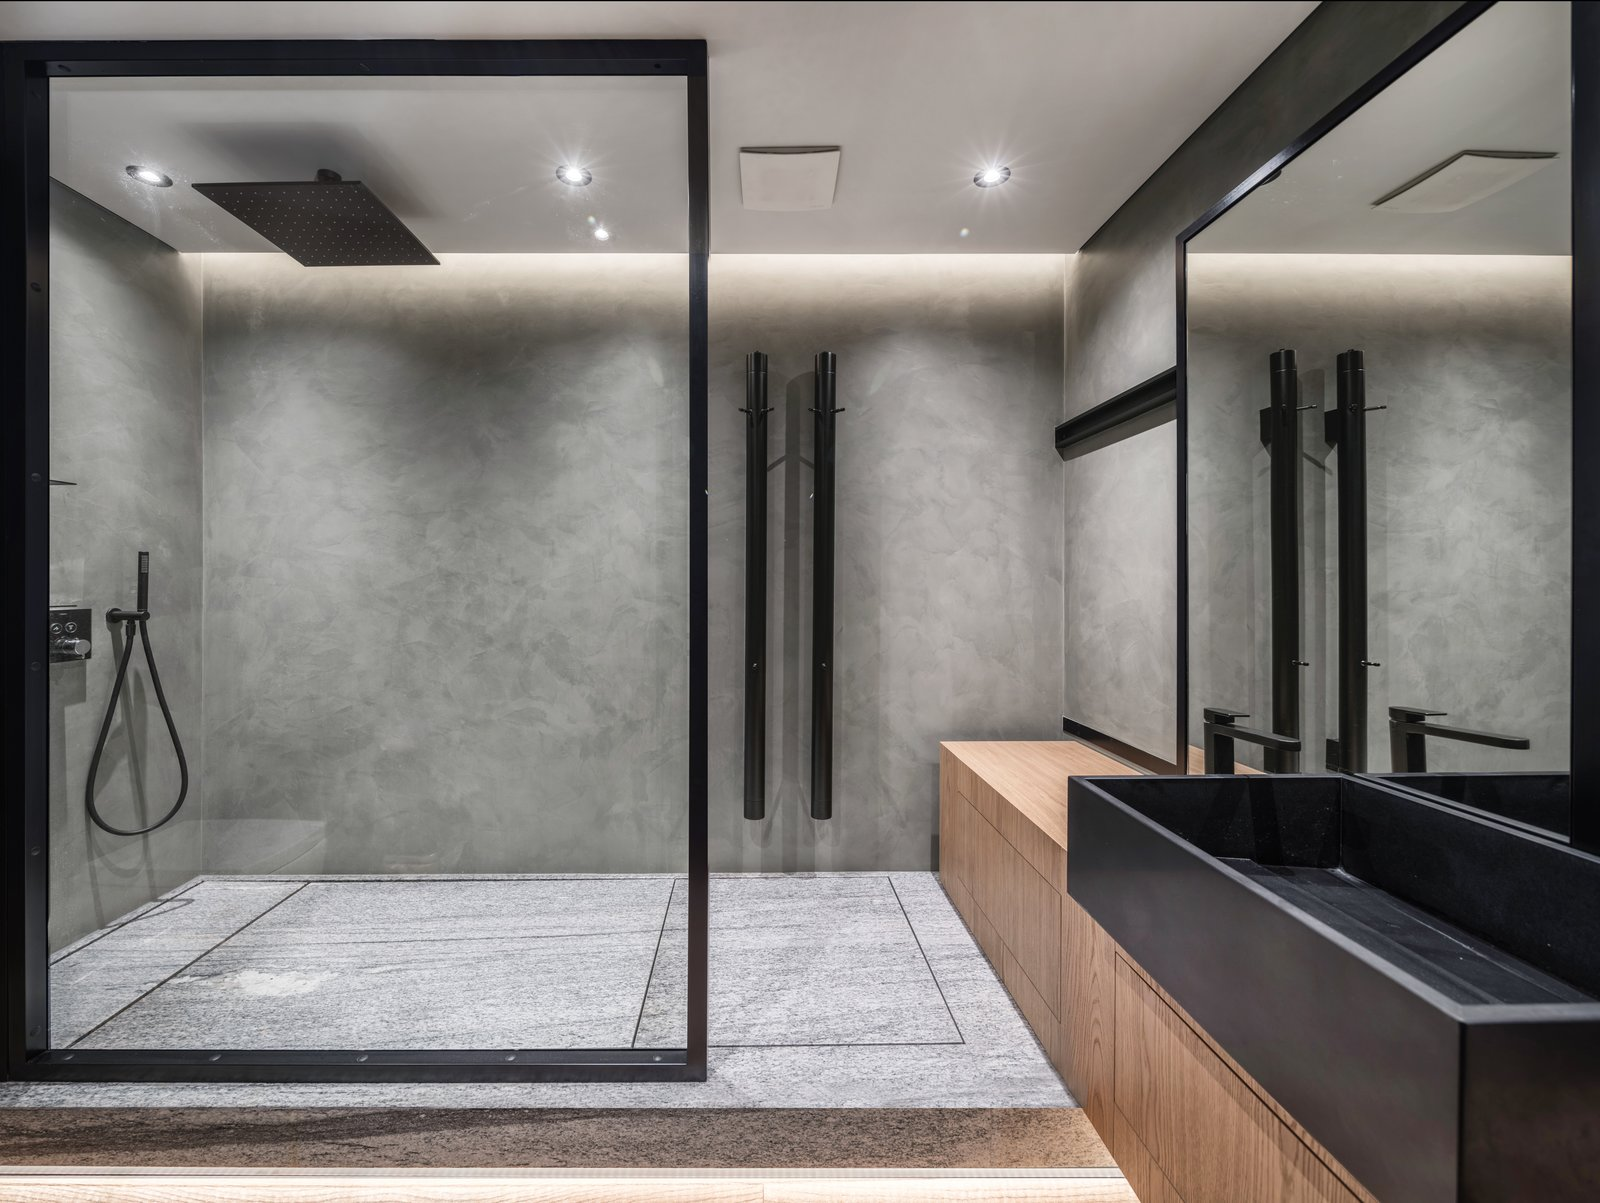 the-glass-dividers-in-the-bathroom-are-hand-crafted-by-ukrainian-craftsmen